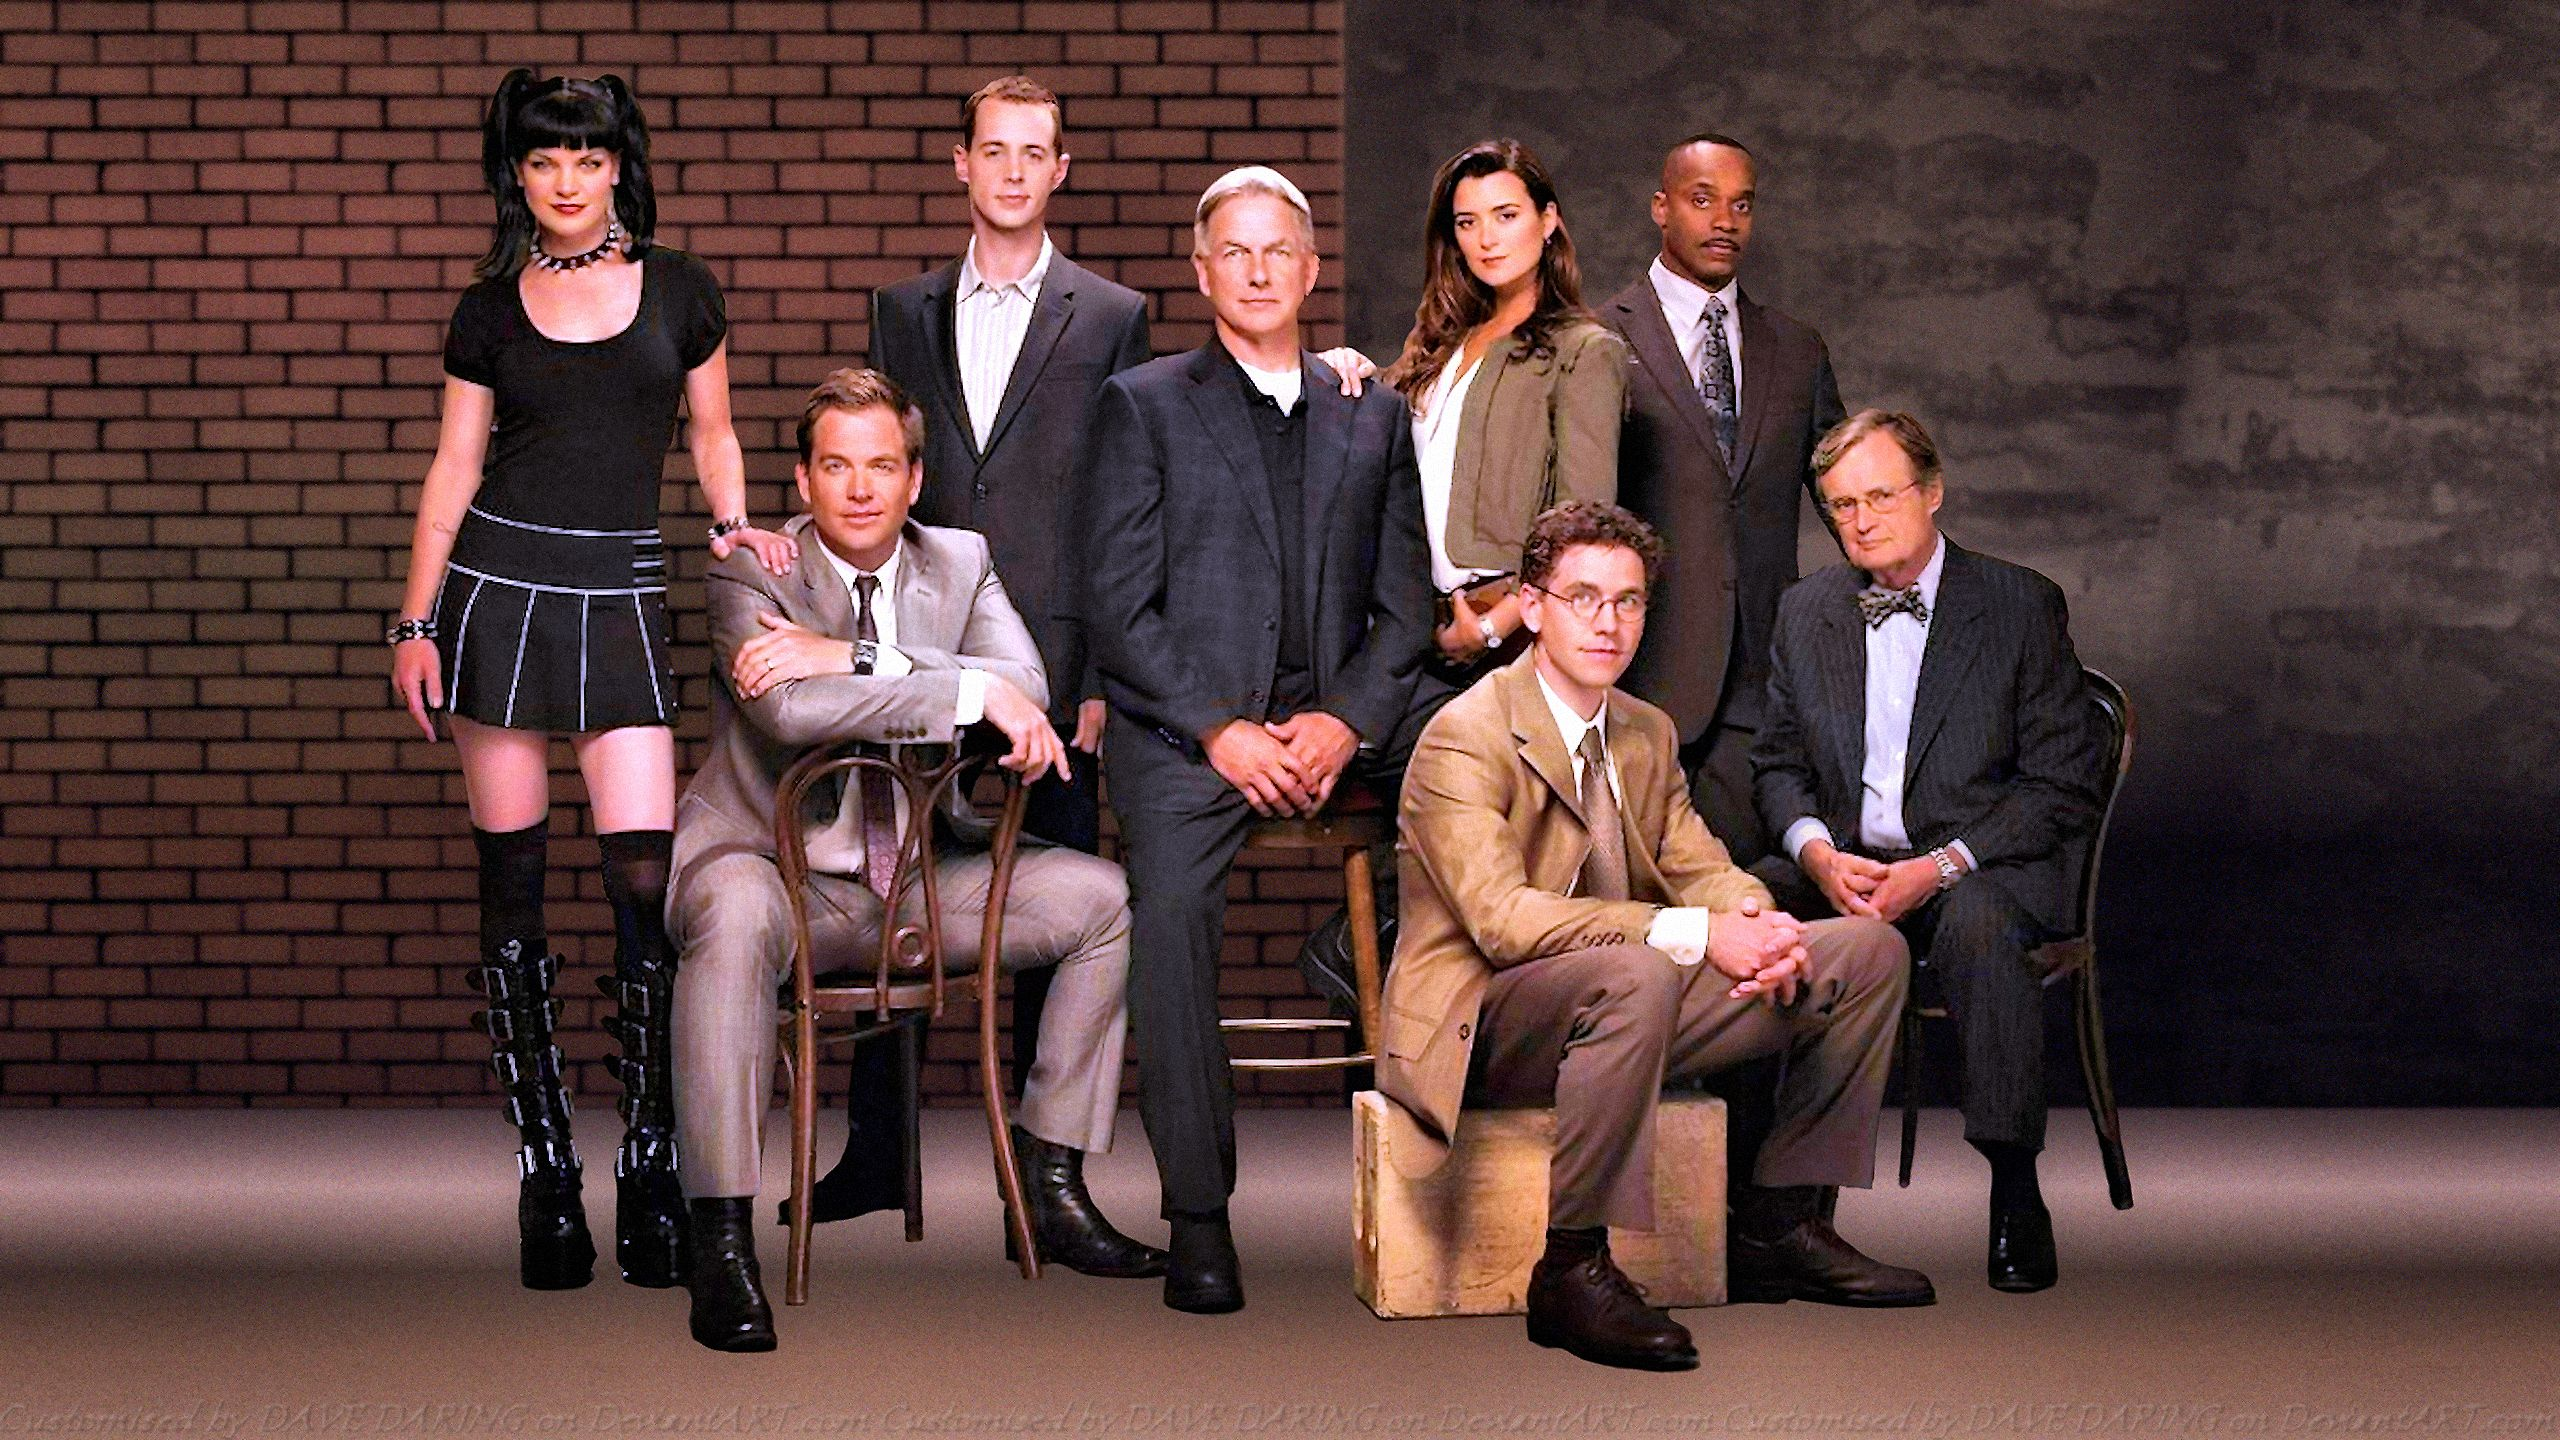 ncis the team by dave daring